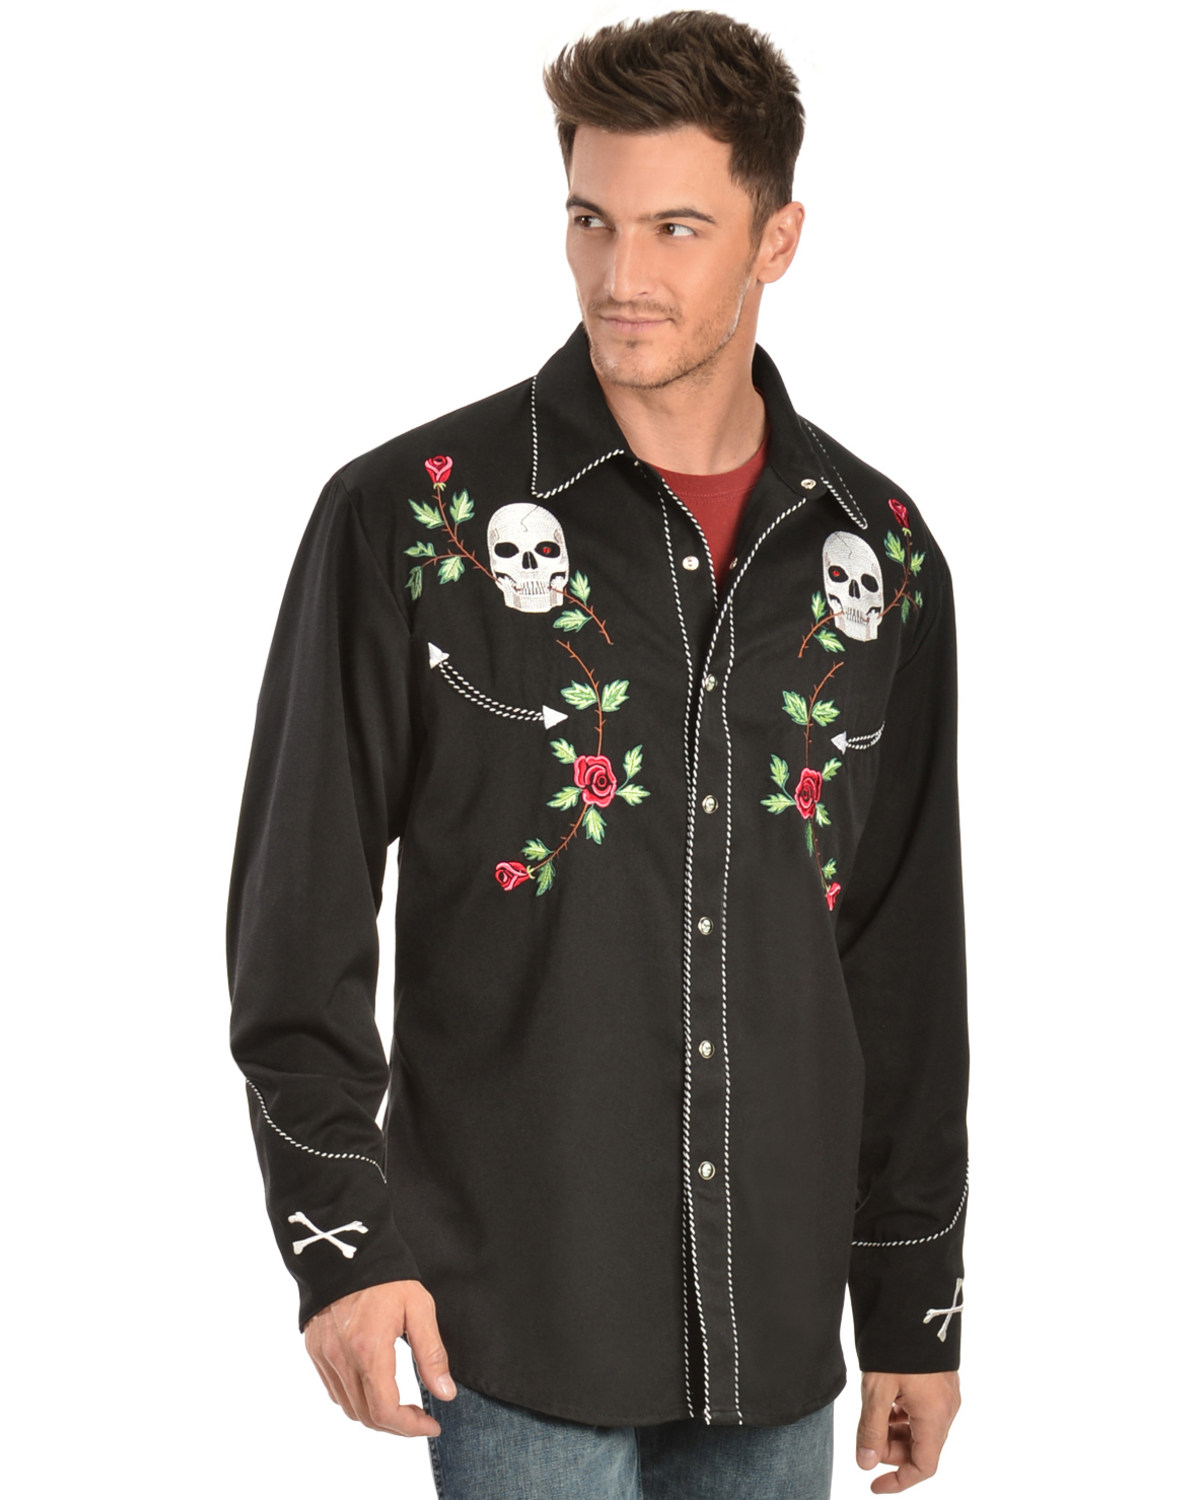 Men S Suits On Pinterest: Scully Men's Skulls And Roses Western Shirt